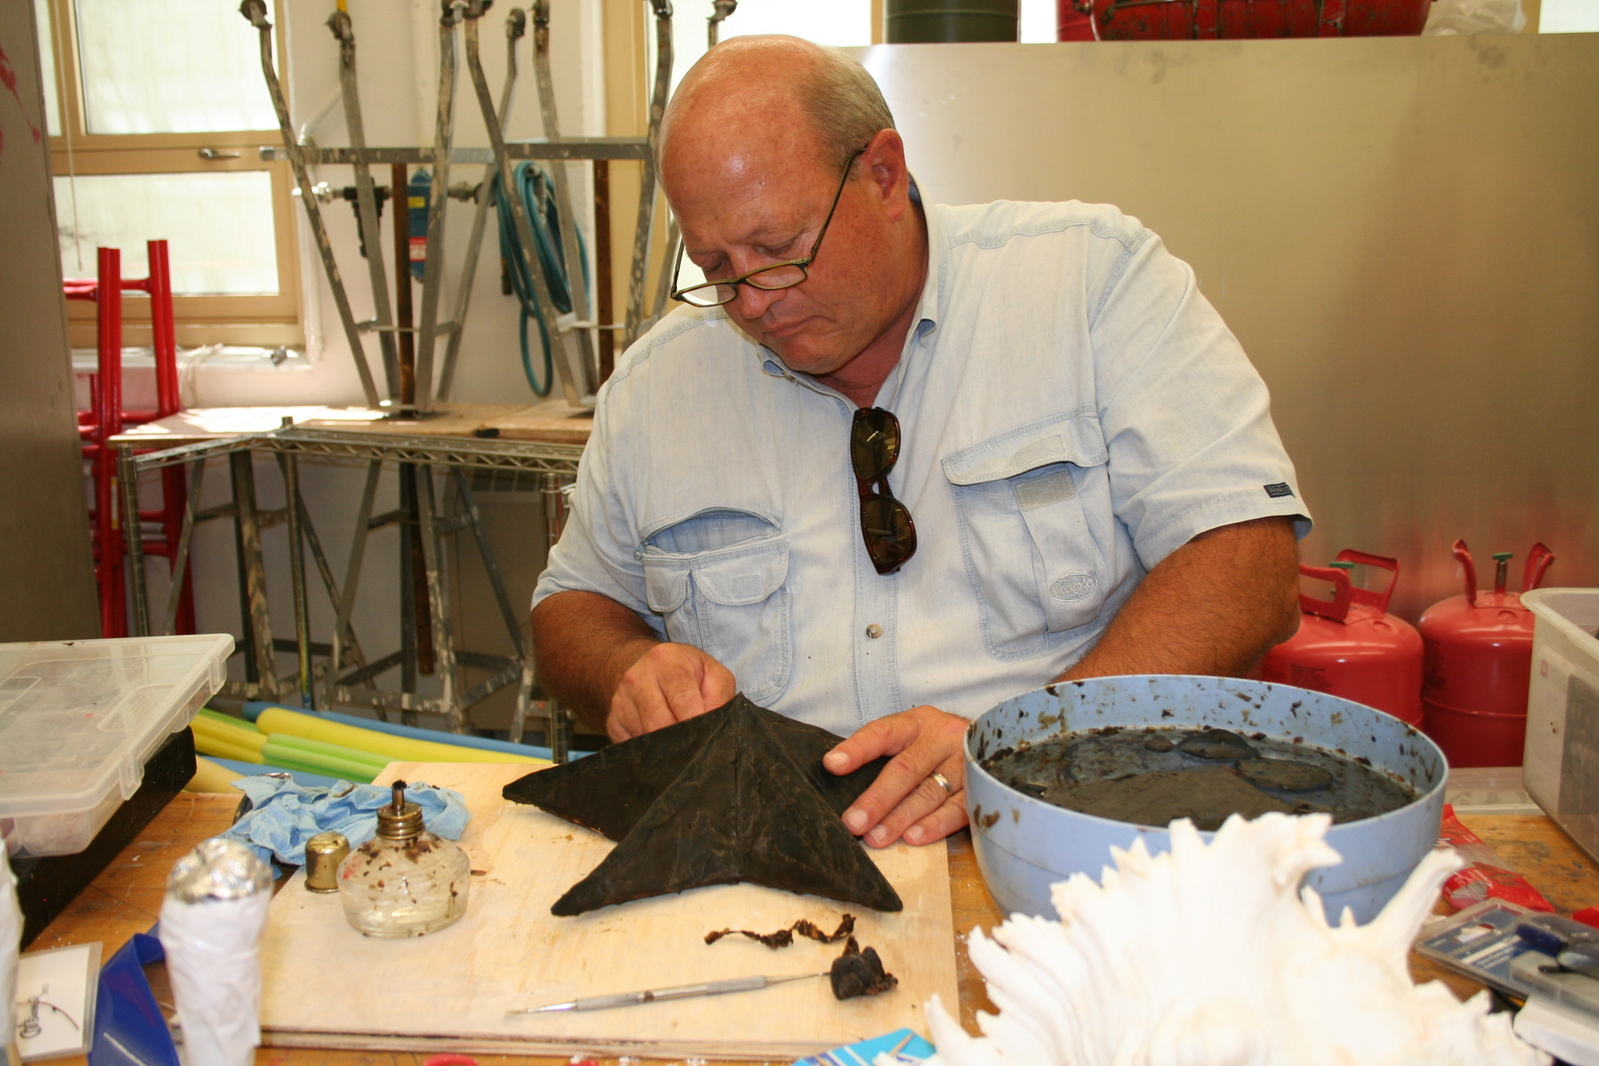 The star and comets were created by alumni in a CraftSummer workshop lead by Jim Killy, professor emeritus of art